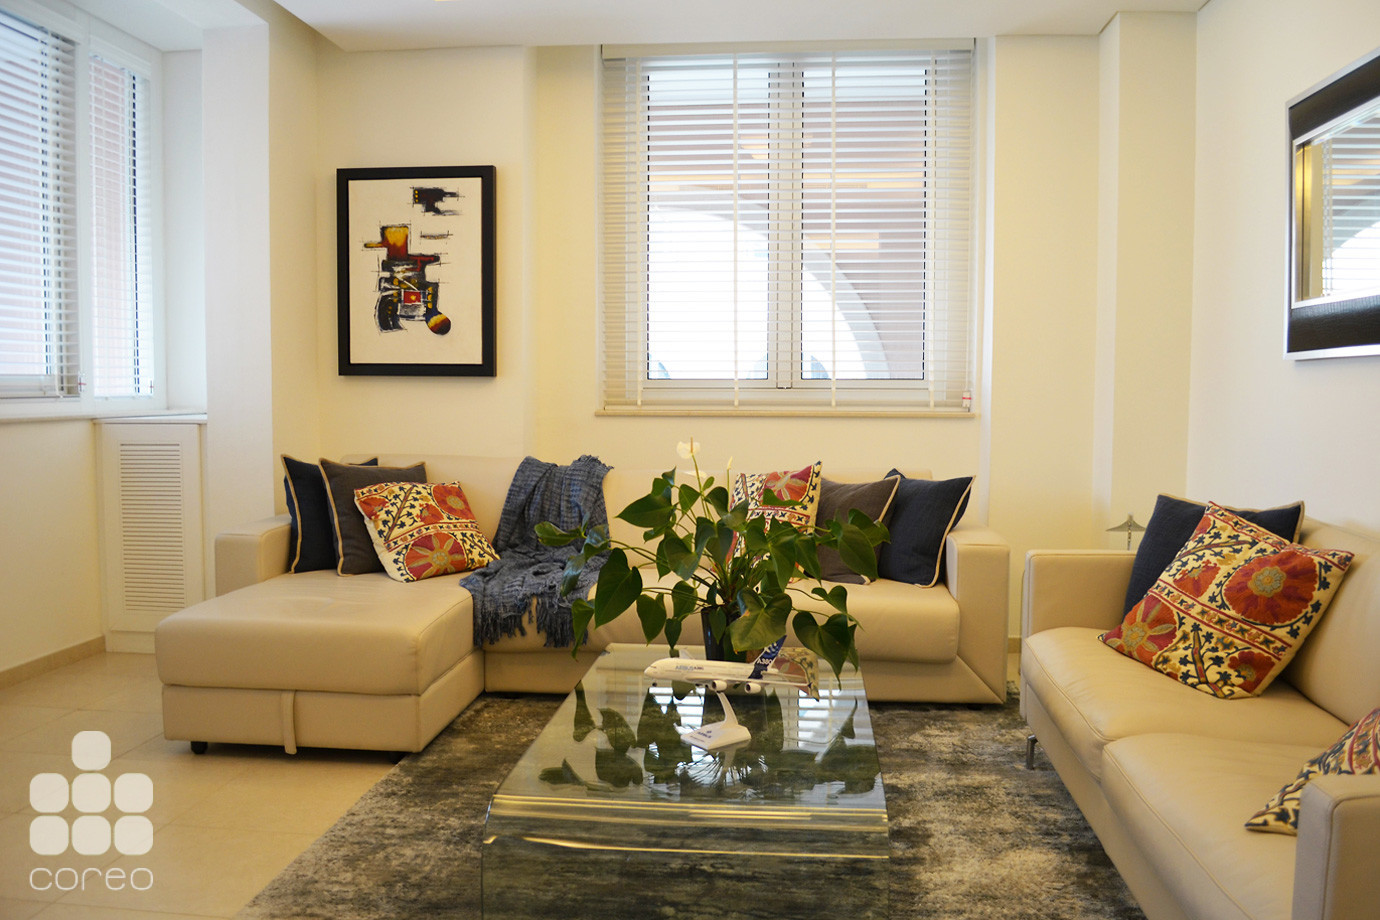 Modern style 1 bedroom for sale in vb23 the pearl doha qatar